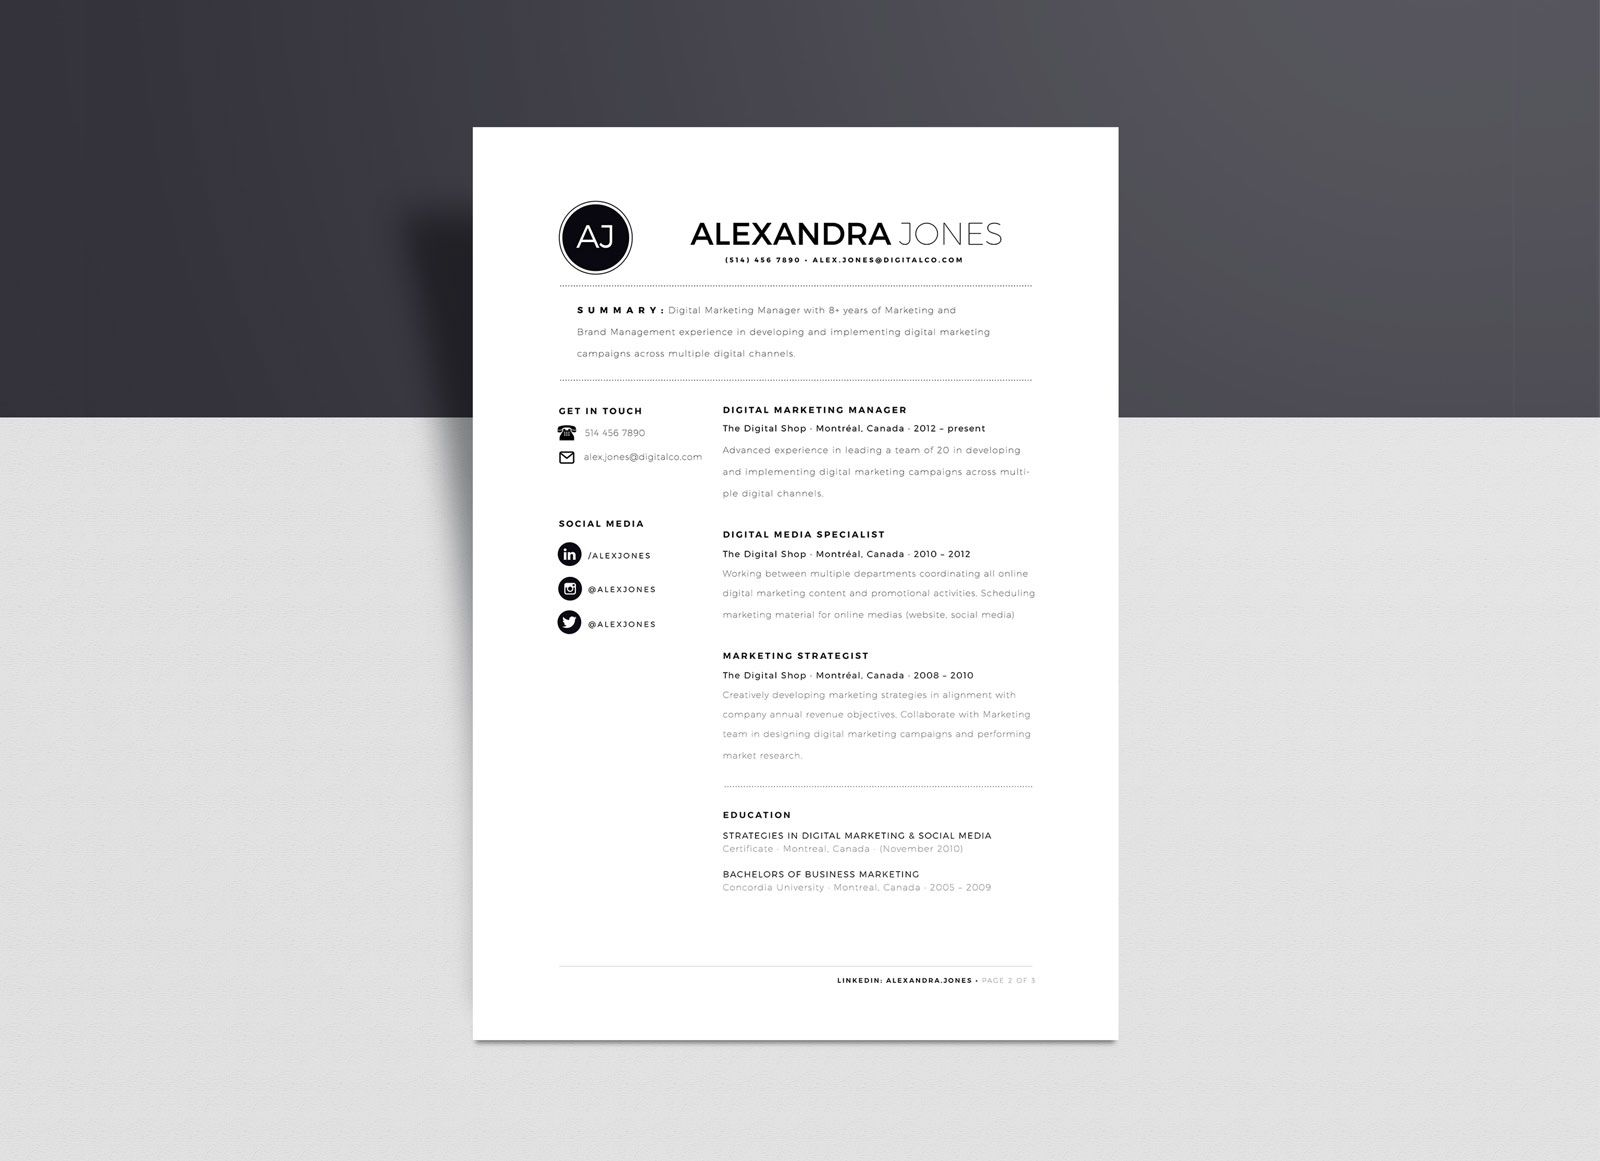 002 Frightening Resume Template Word Free High Definition  Download India 2020Full